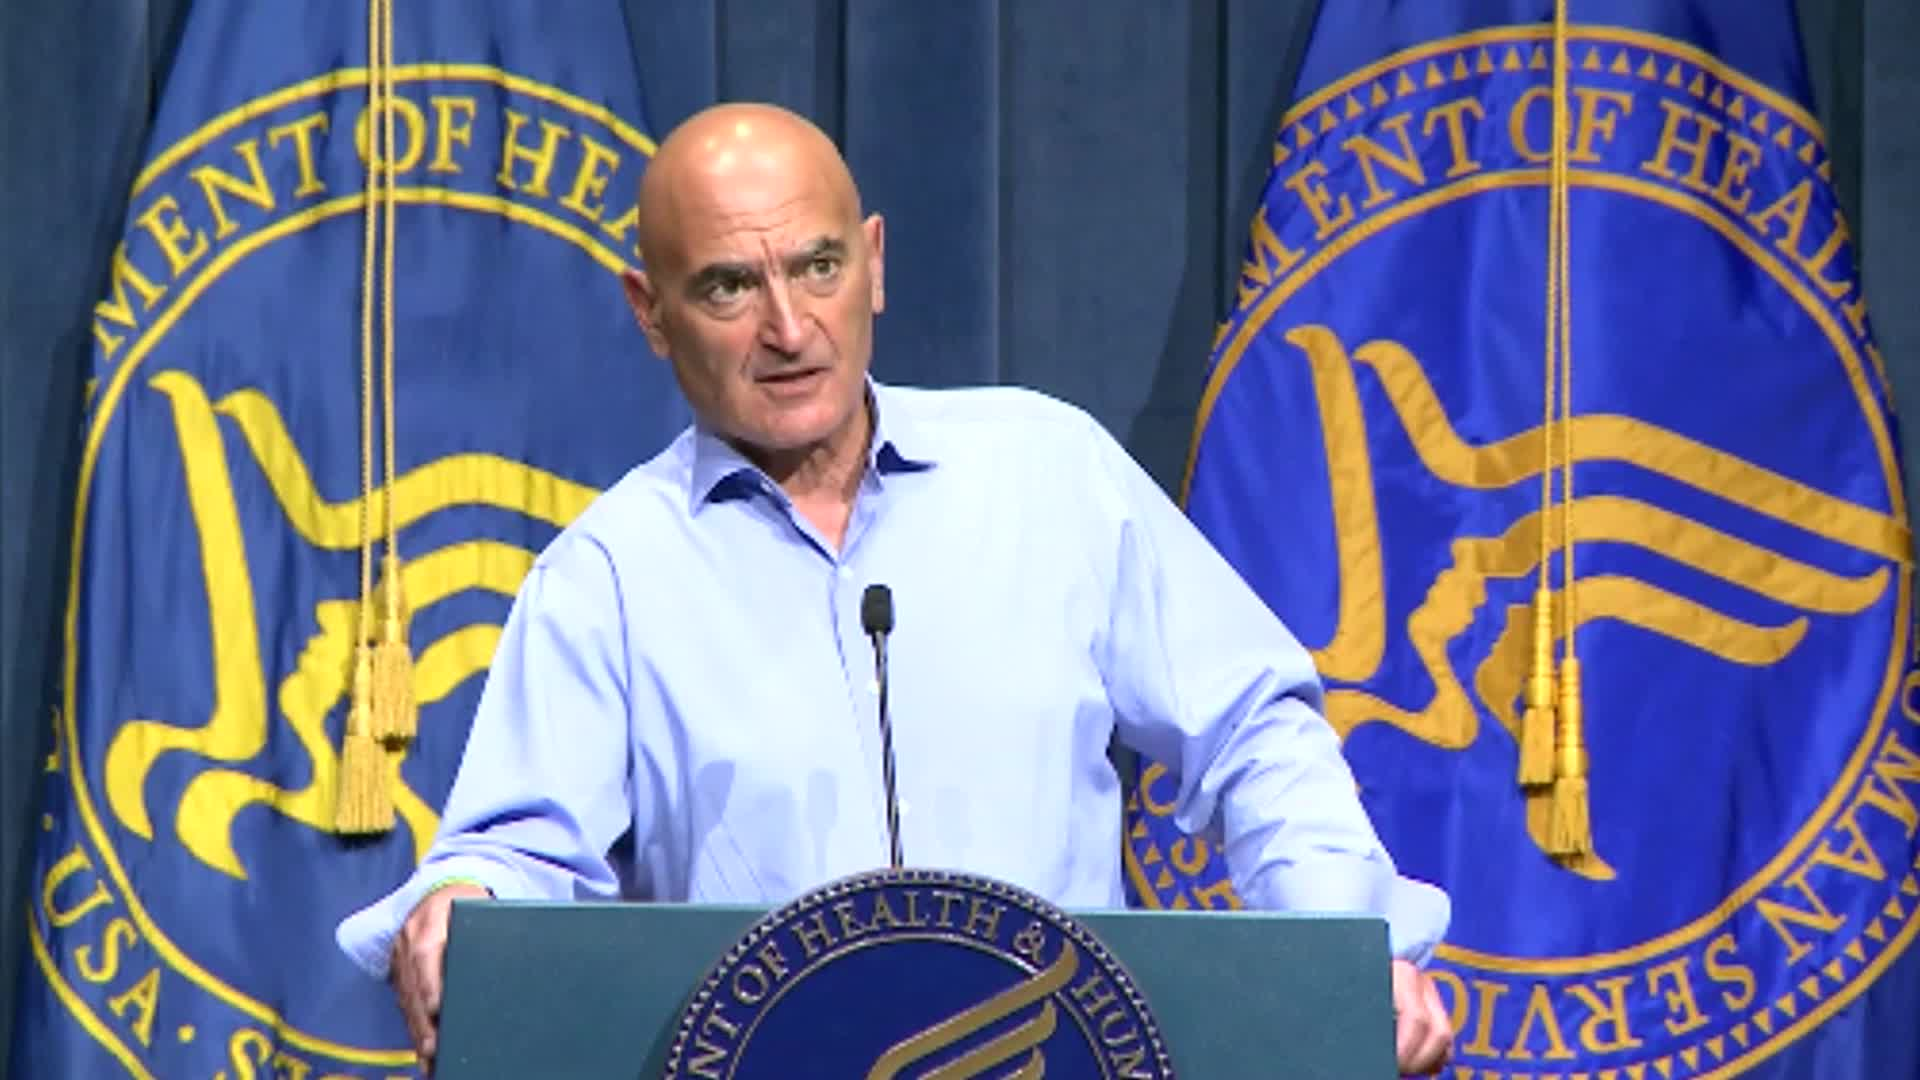 Operation Warp Speed's chief adviser Moncef Slaoui speaks during a briefing on January 12.